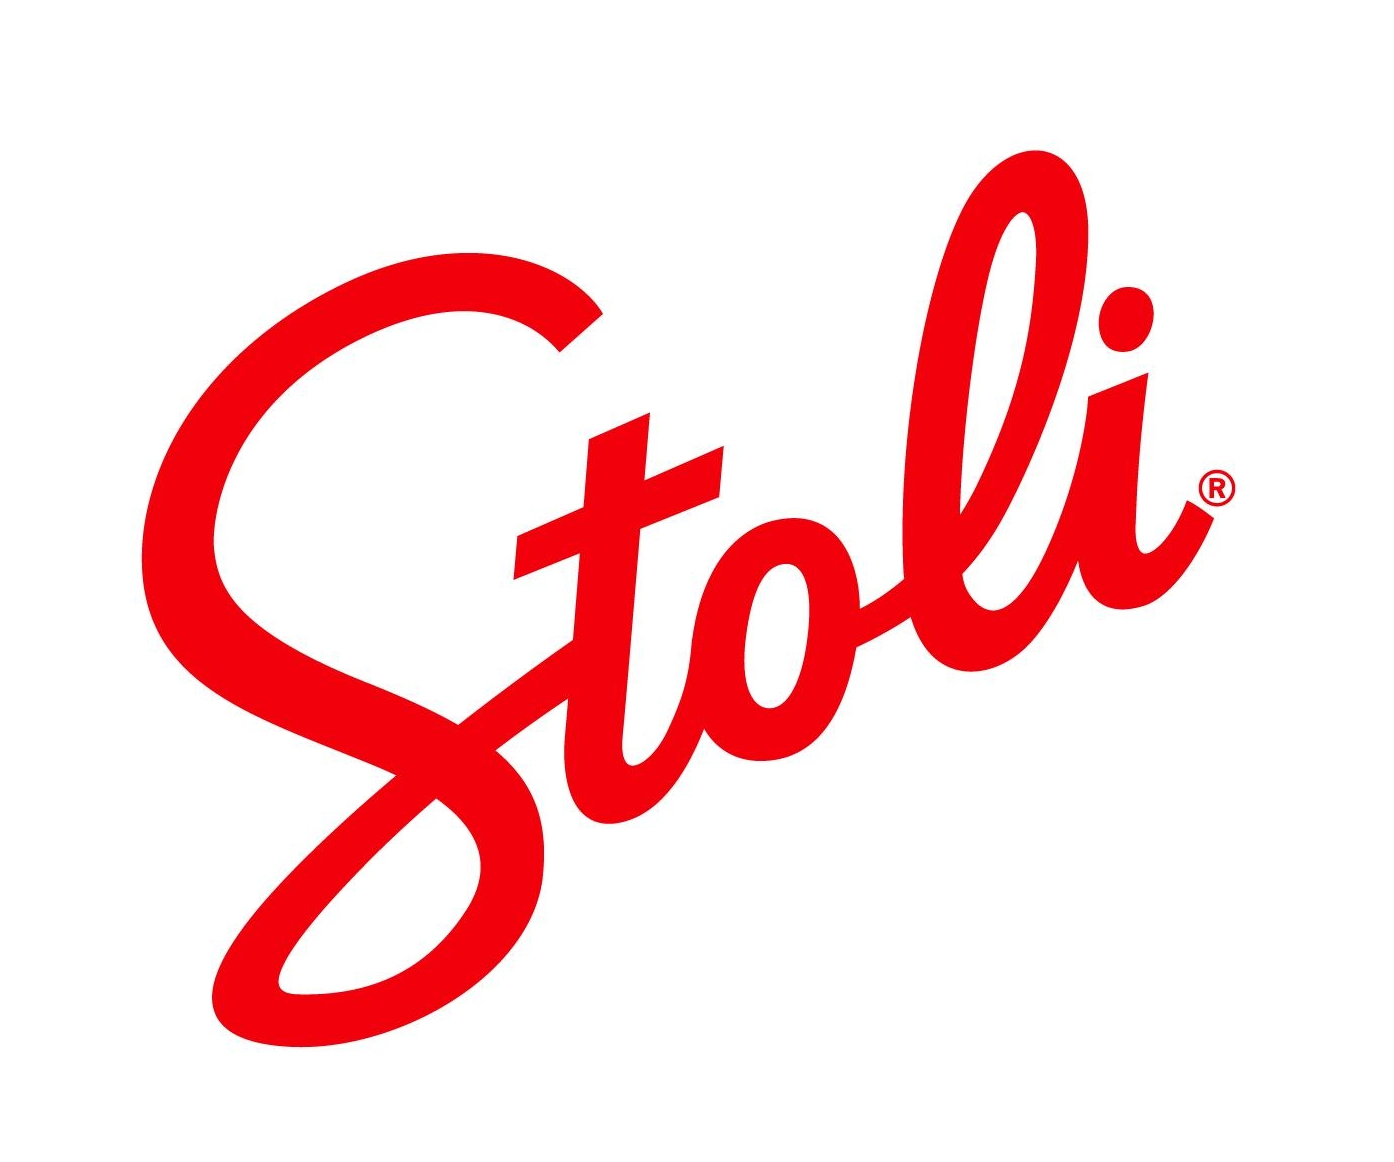 Stoli 4.0 - Script Logo - Red on White - CMYK_11540-01.jpg